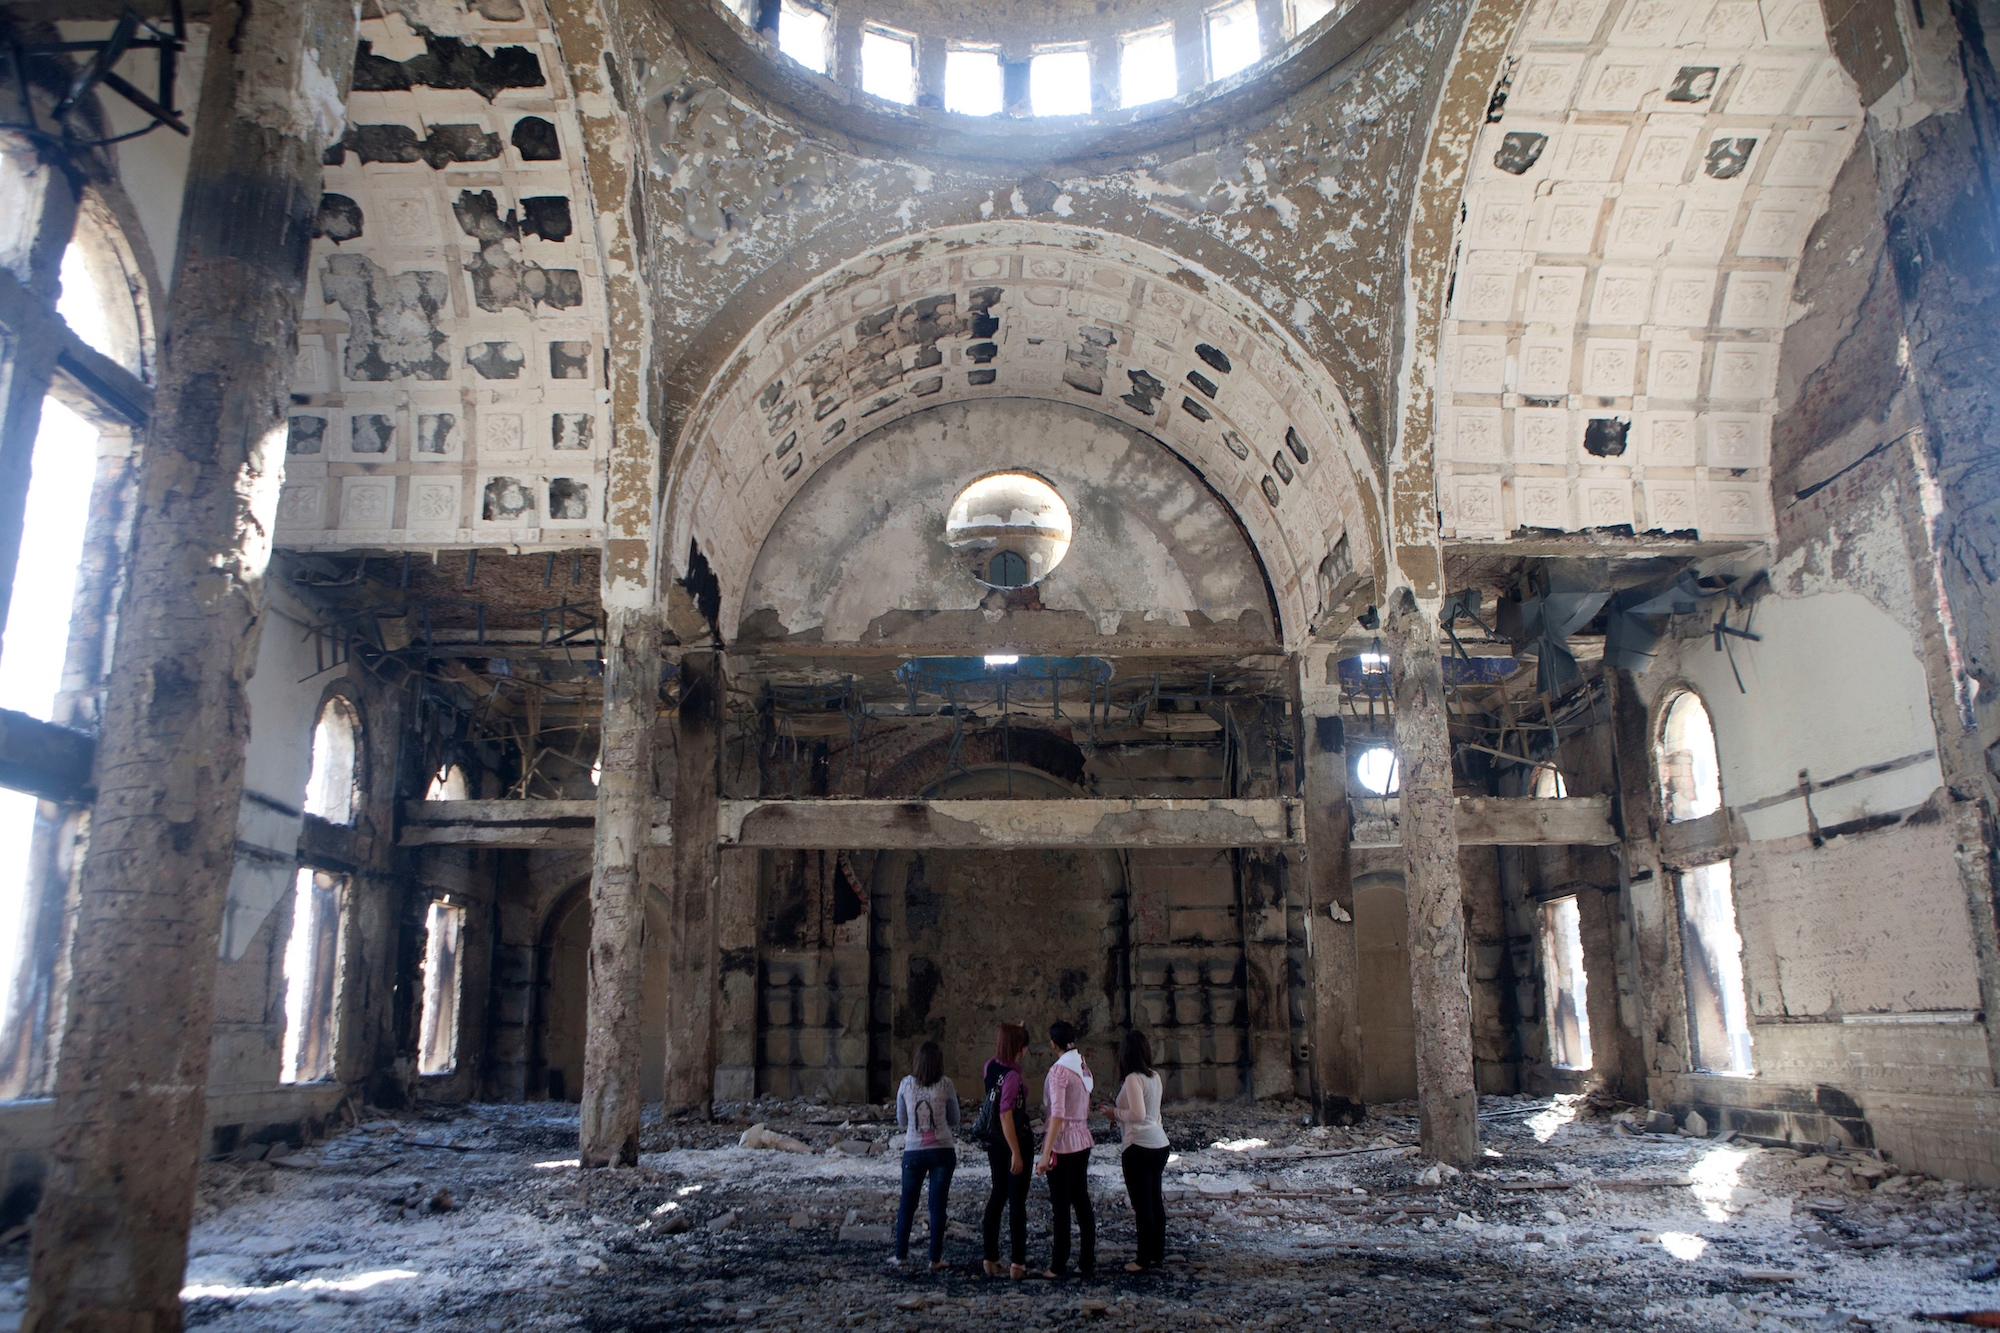 Four women stand in the heavily damaged St. Mousa church in Minya, Egypt, on August 22, 2013. That year, the temple was one of the dozens of churches, businesses and homes that were burned during a surge of violence against Egypt's Christian minority.(Photo by Heidi Levine/Sipa Press).